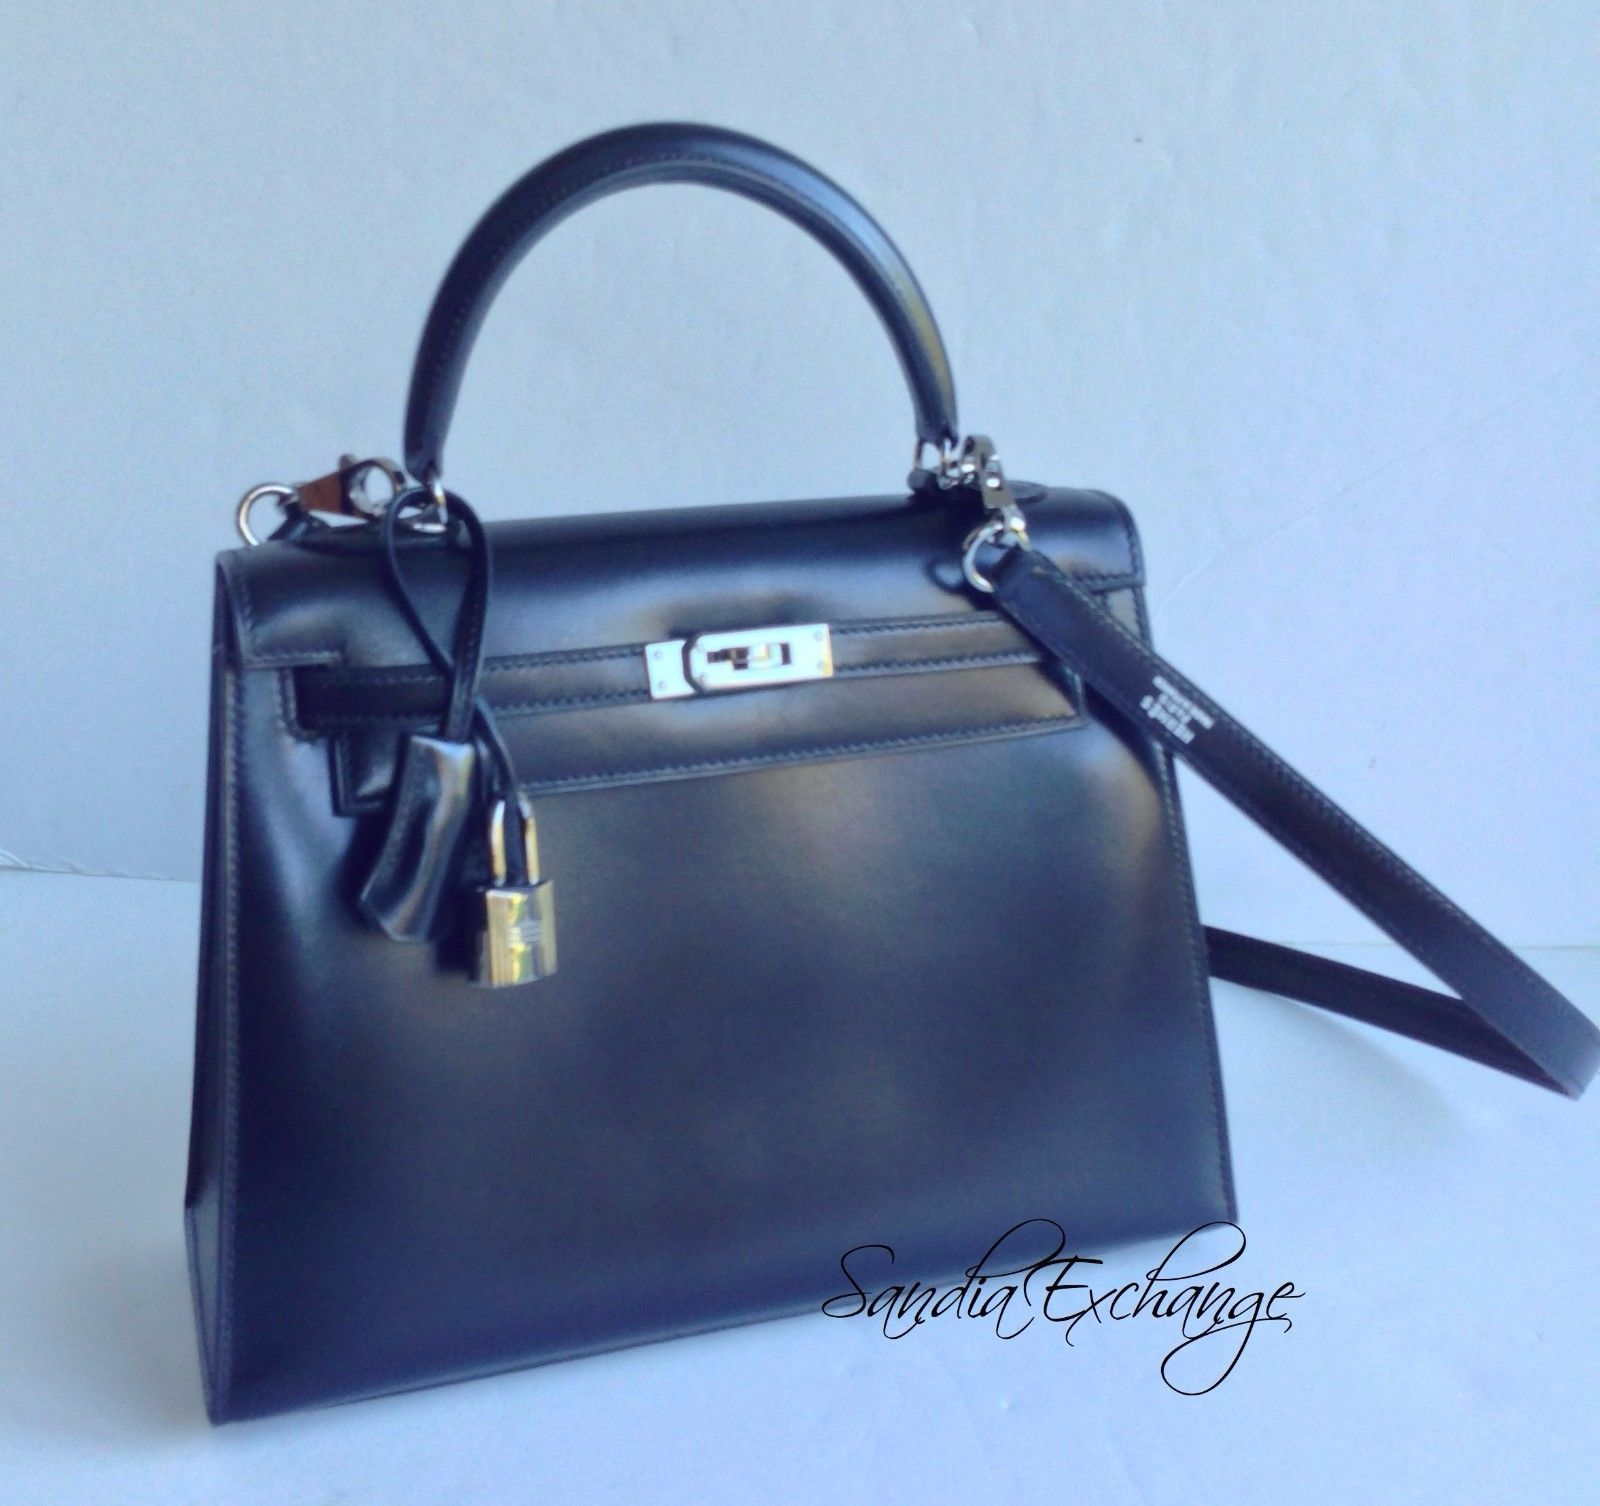 ec0e585ebe39 Hermes Kelly 25 cm Black Box Calf Ruthenium Hardware RARE Authentic Hermès  RARE